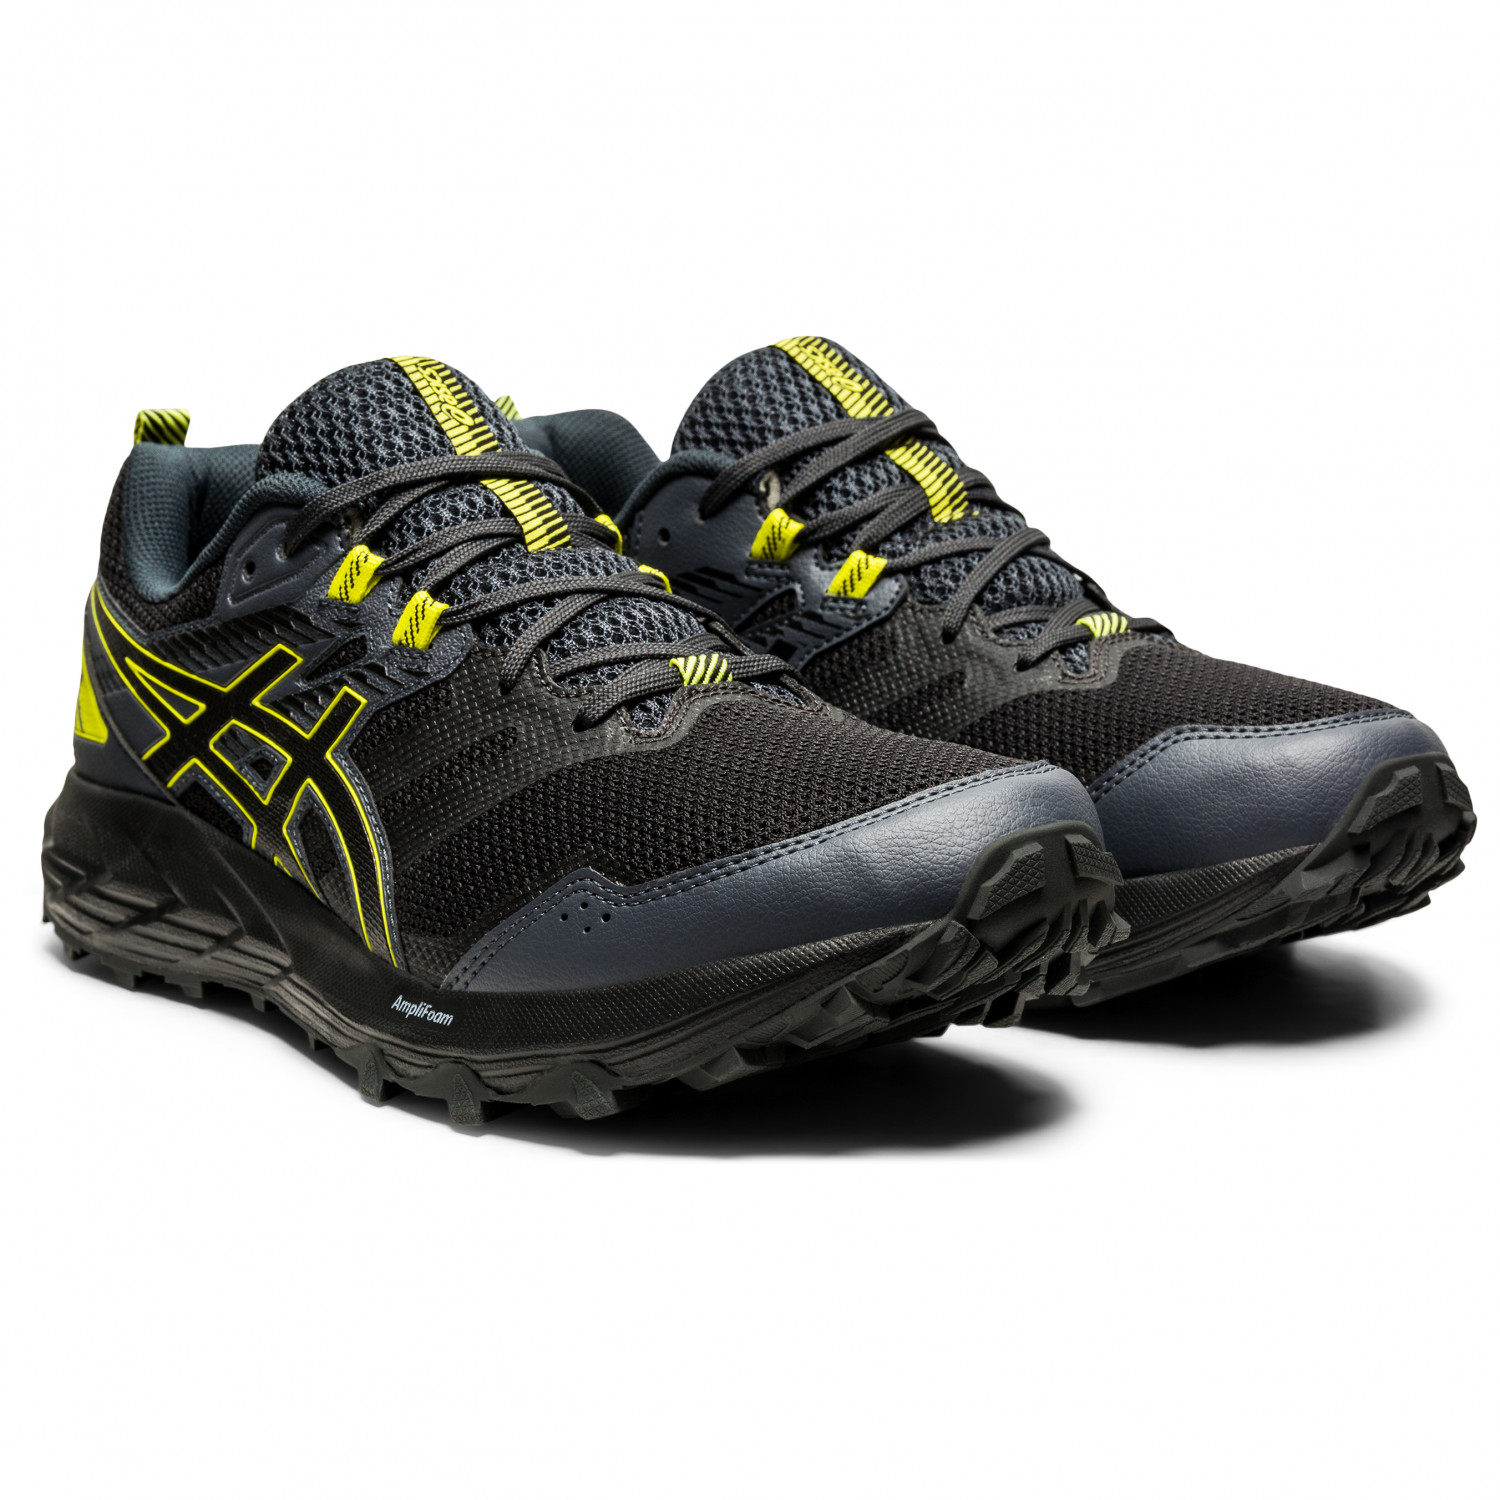 Asics Gel-Sonoma 6 - Trail running shoes Men's | Free EU Delivery ...